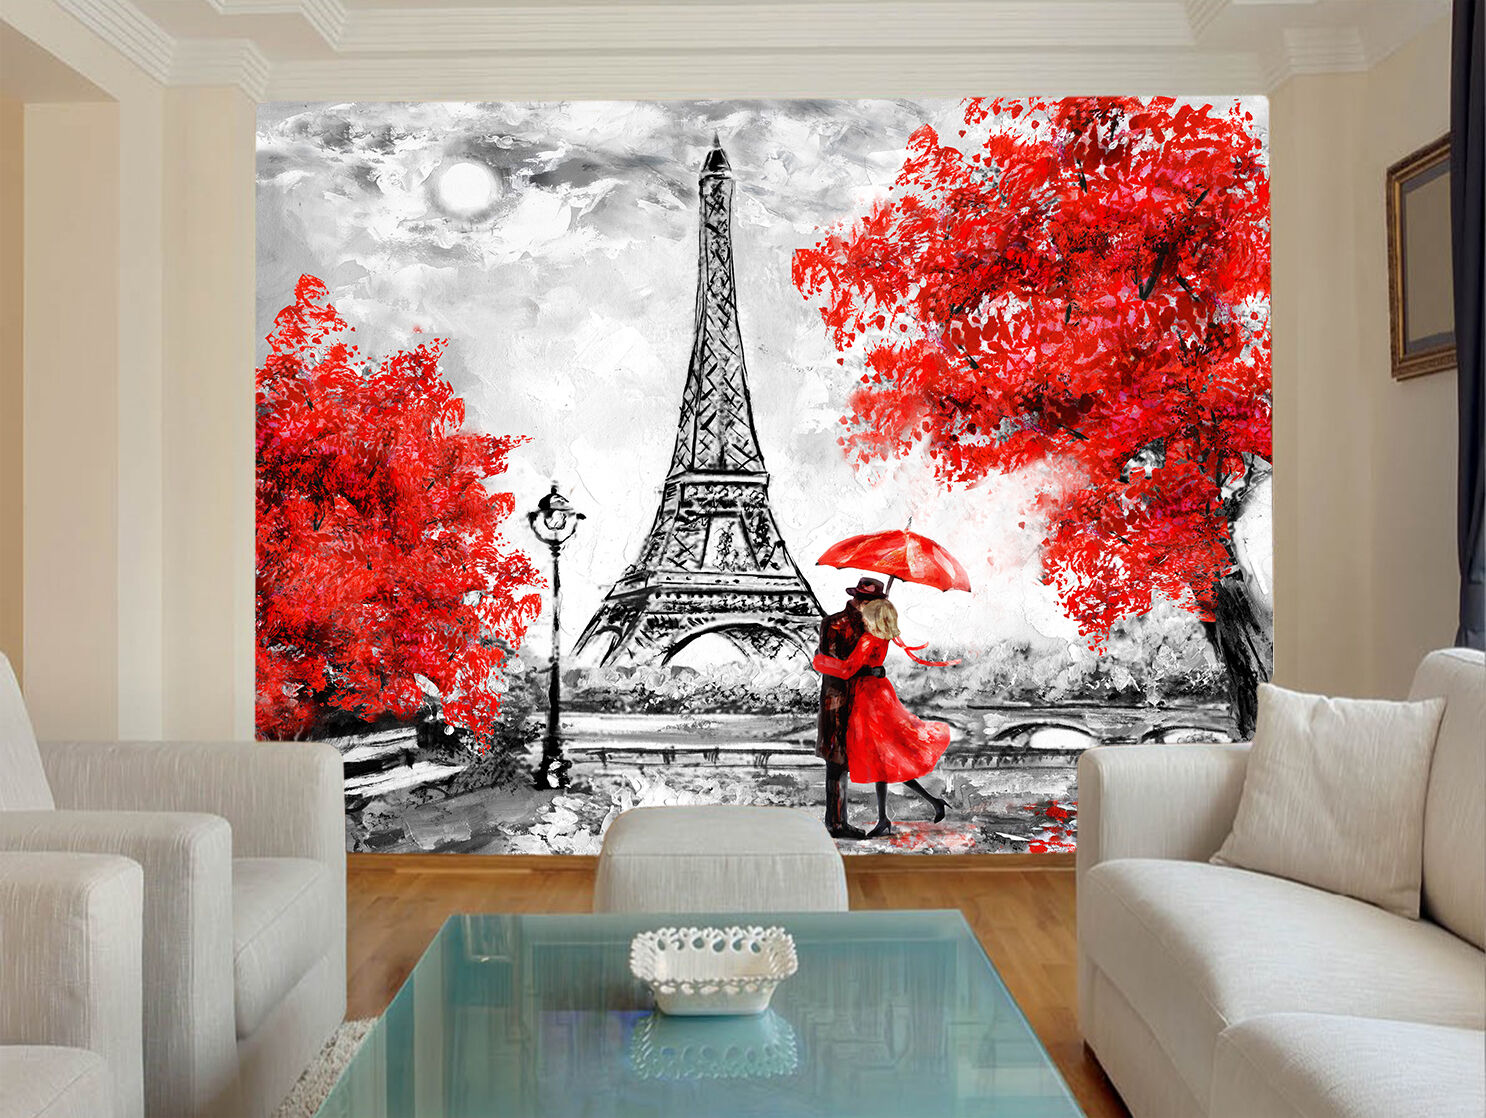 HQ Wall Mural Red White Black Paris Eiffel Tower Vintage Photo